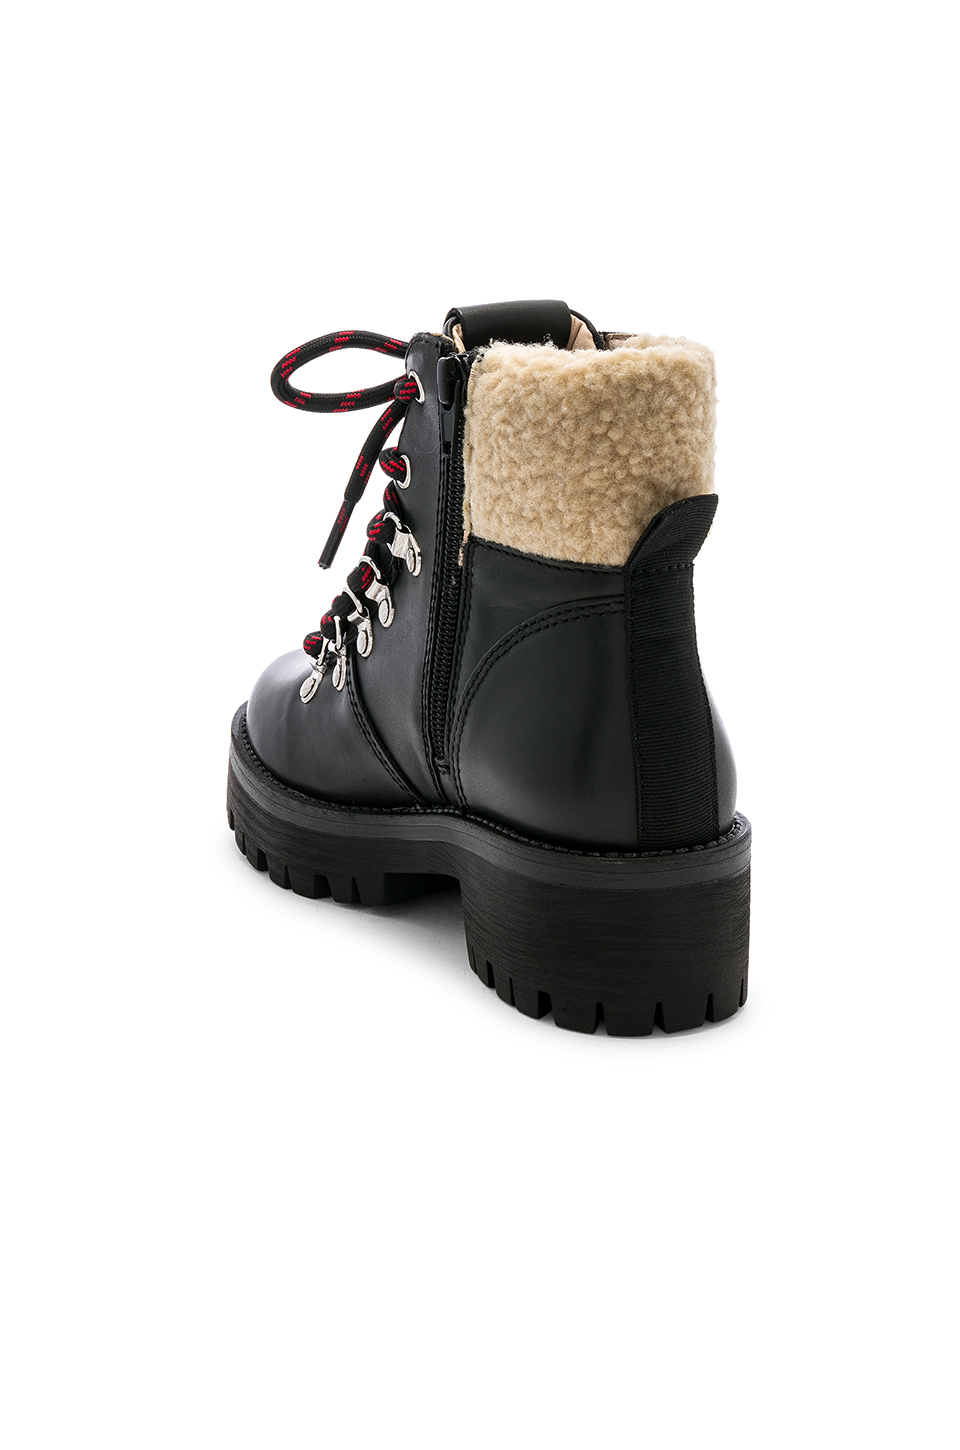 7f32afdf9a2 Buy Original Steve Madden Broadway Boot at Indonesia